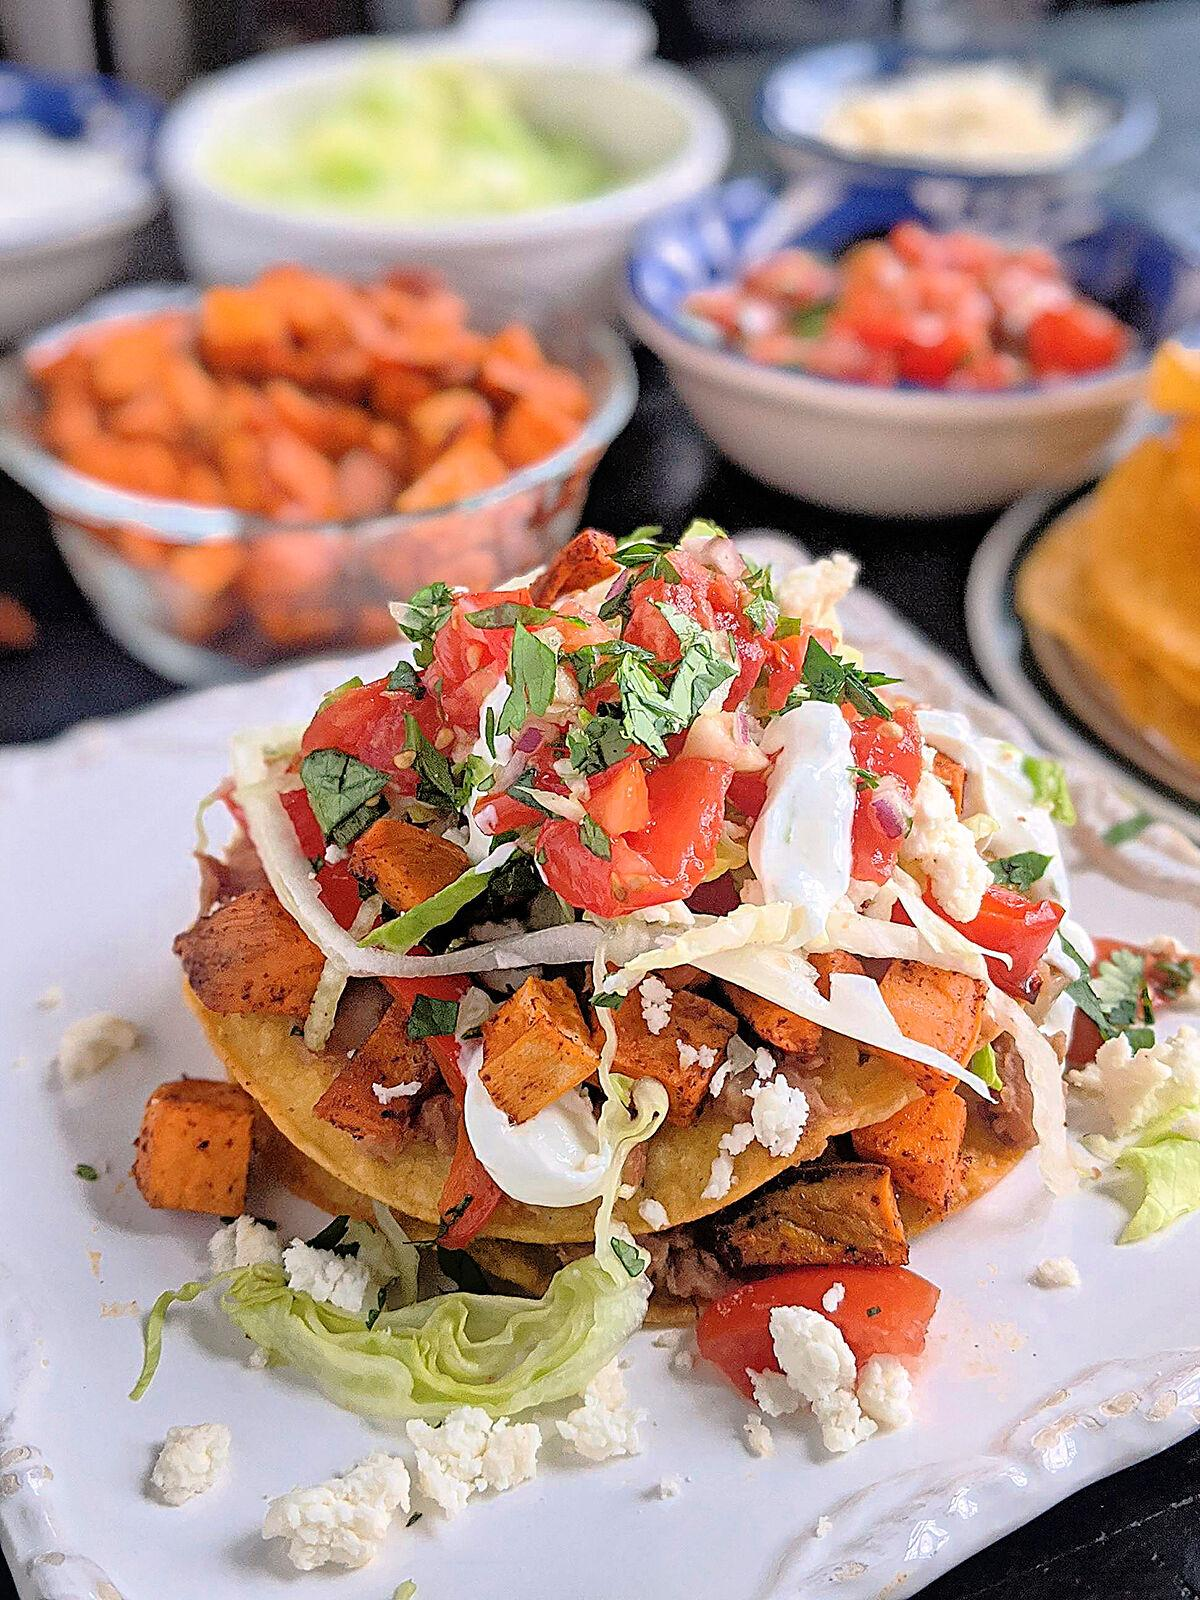 These vegetarian tostadas are stacked with two layers of smashed pinto beans, lettuce, pico and roasted sweet potatoes and bell peppers.